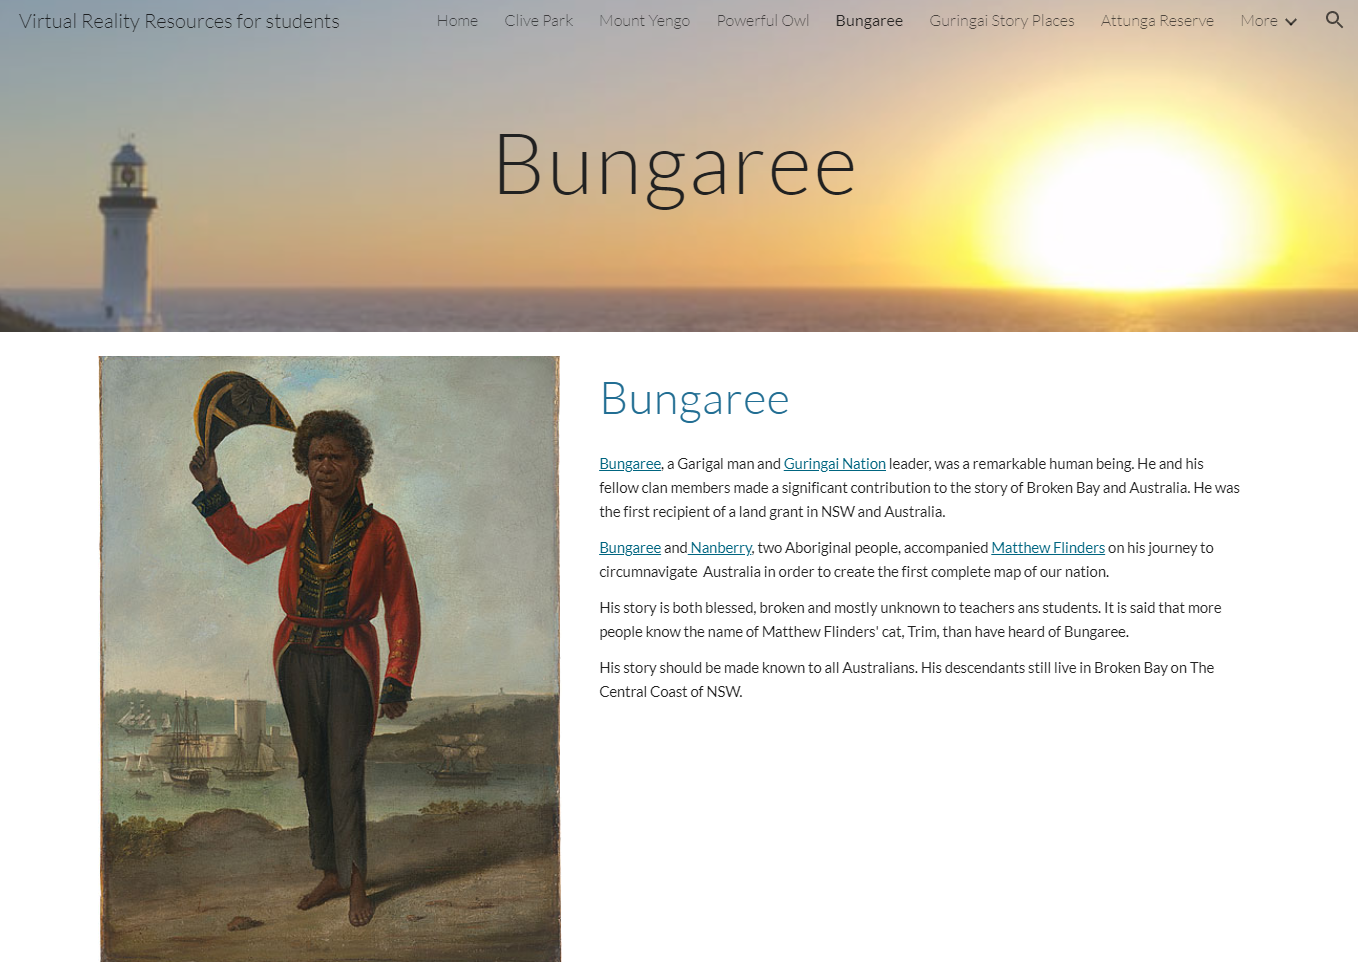 Image from the Bungaree Virtual Reality Resource